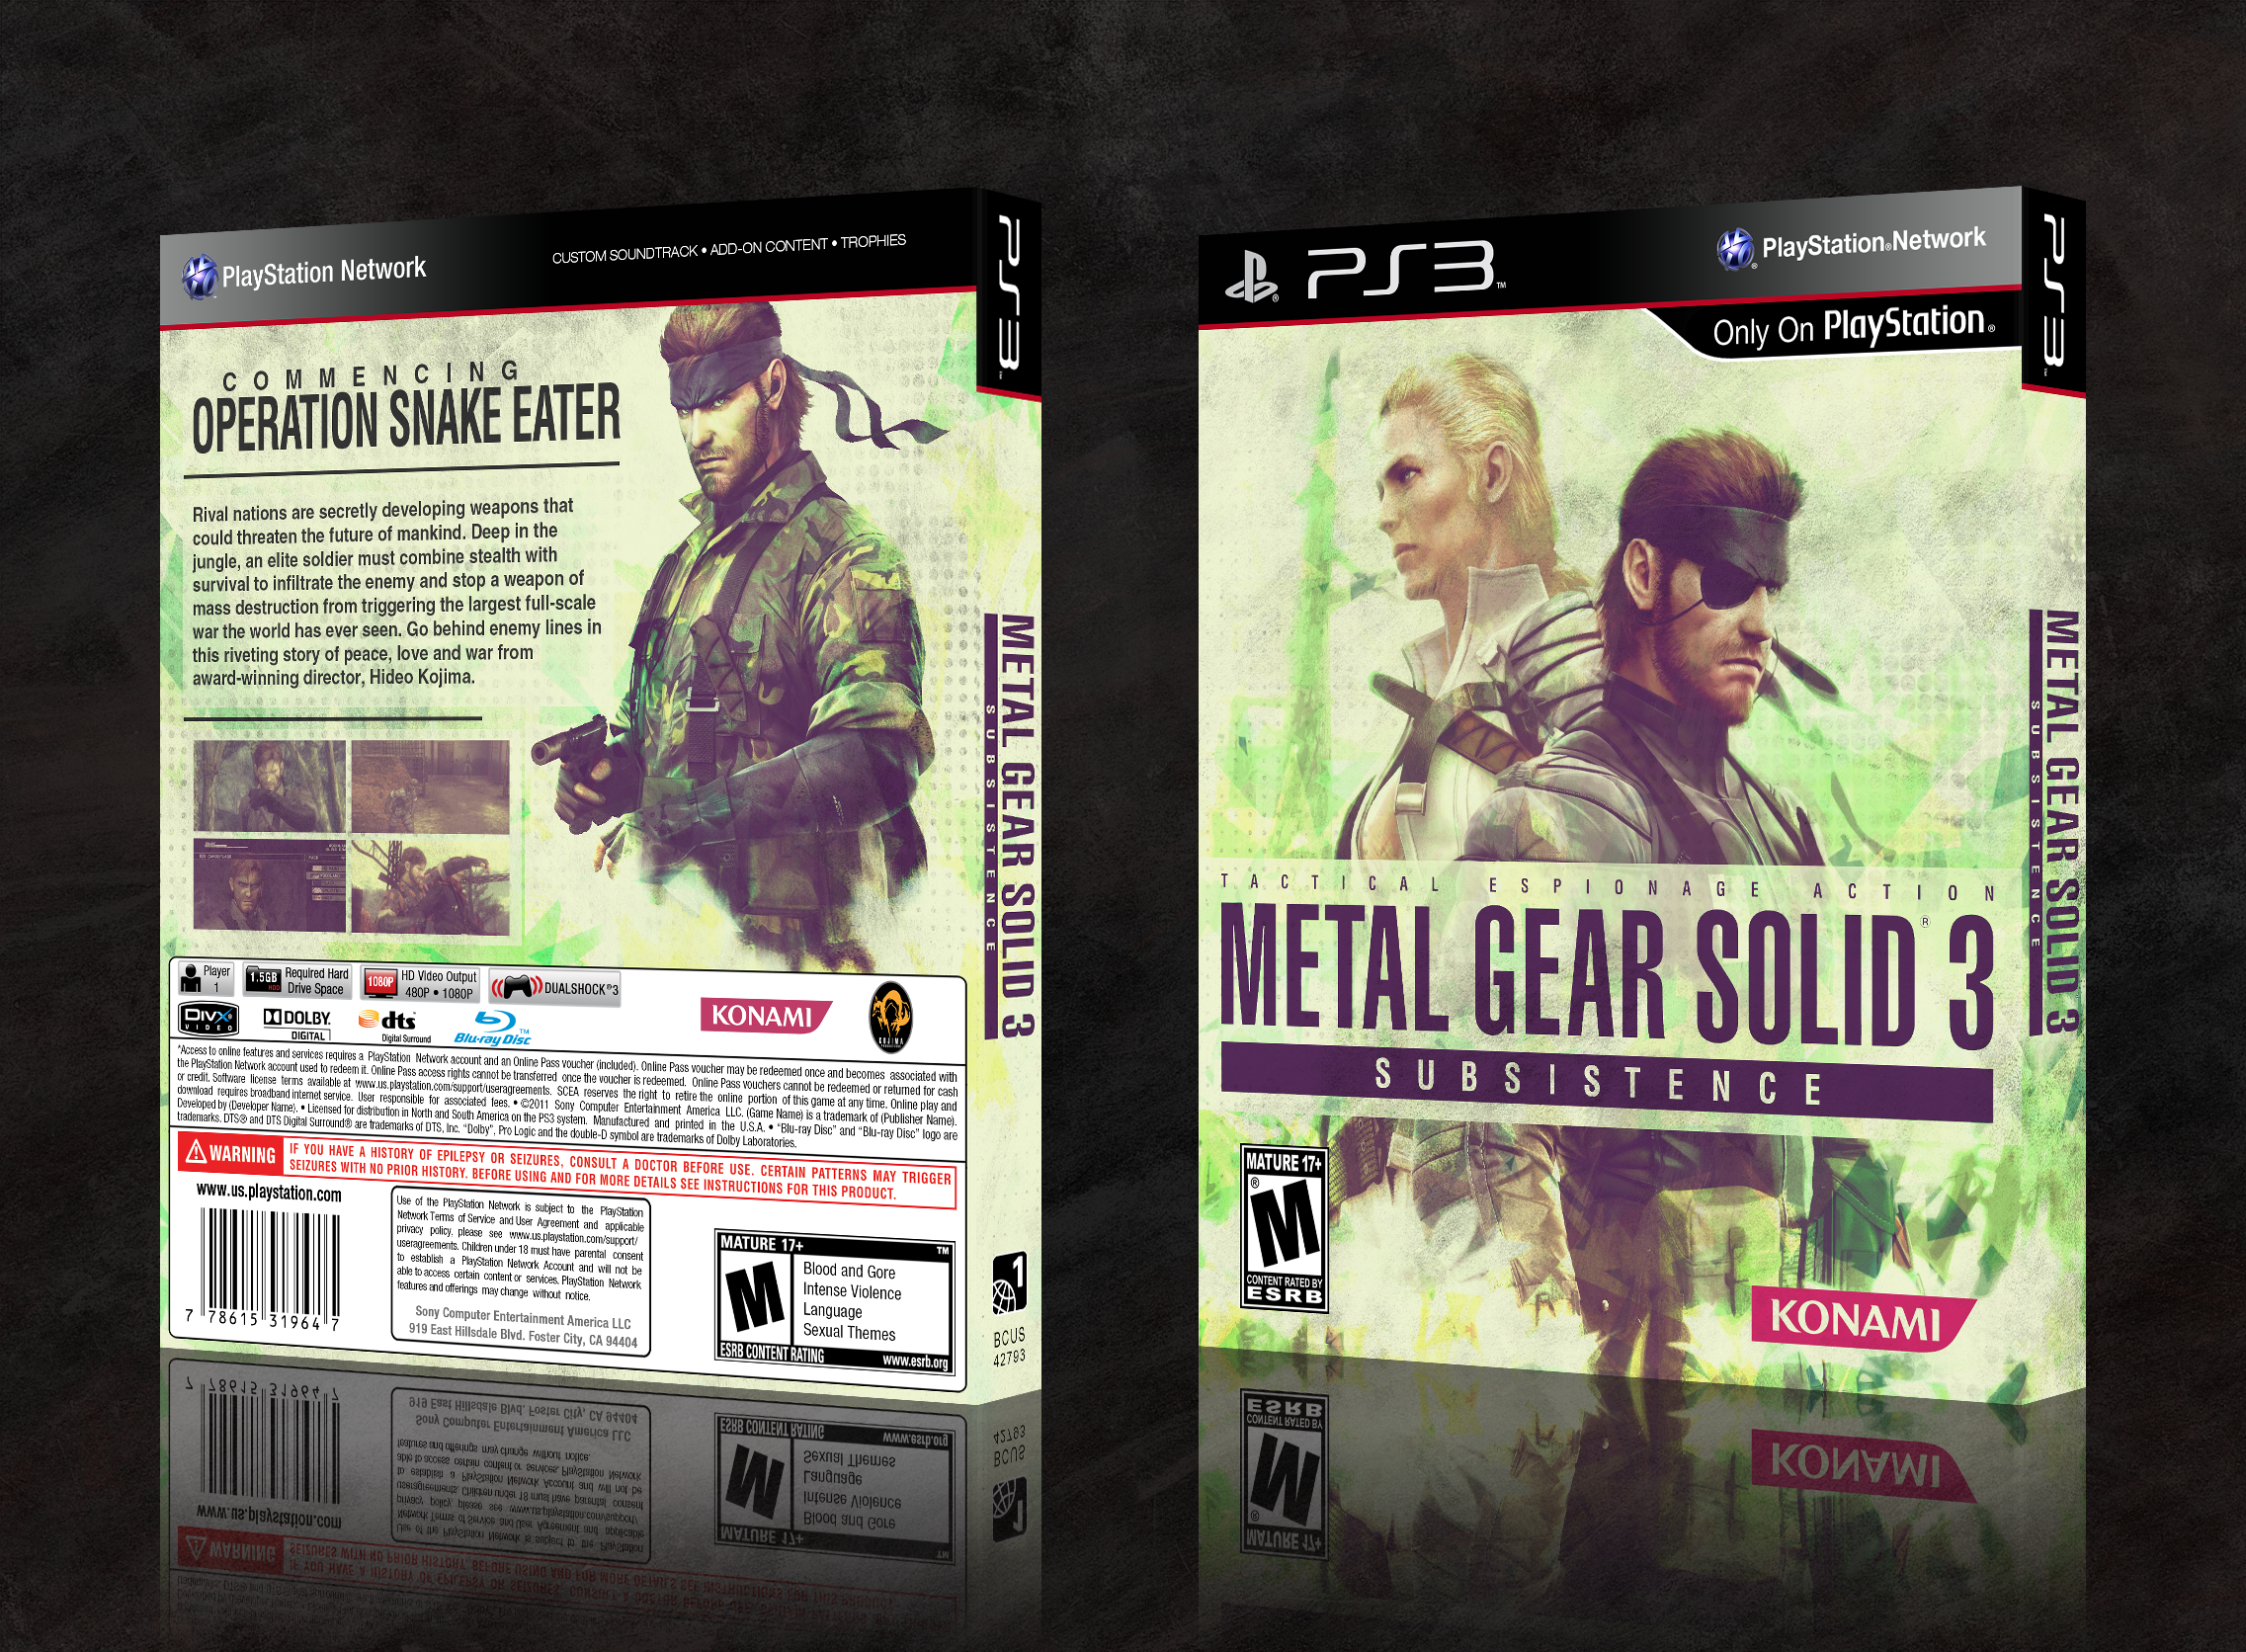 Metal Gear Solid 3: Subsistence box cover